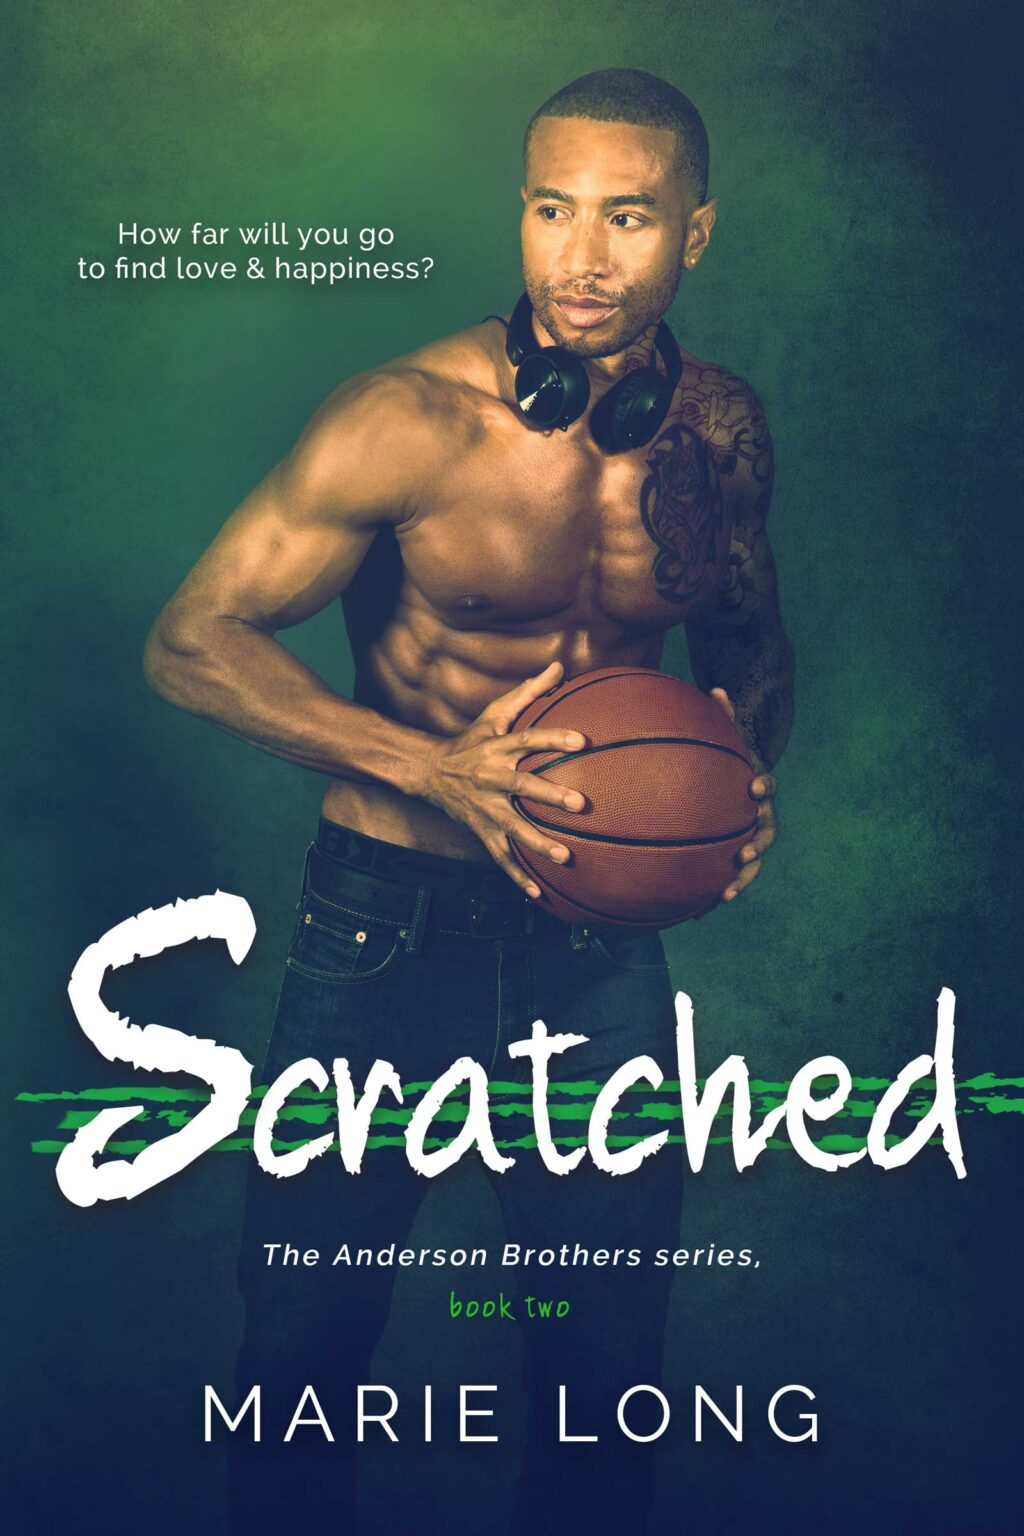 Scratched (The Anderson Brothers, book 2)